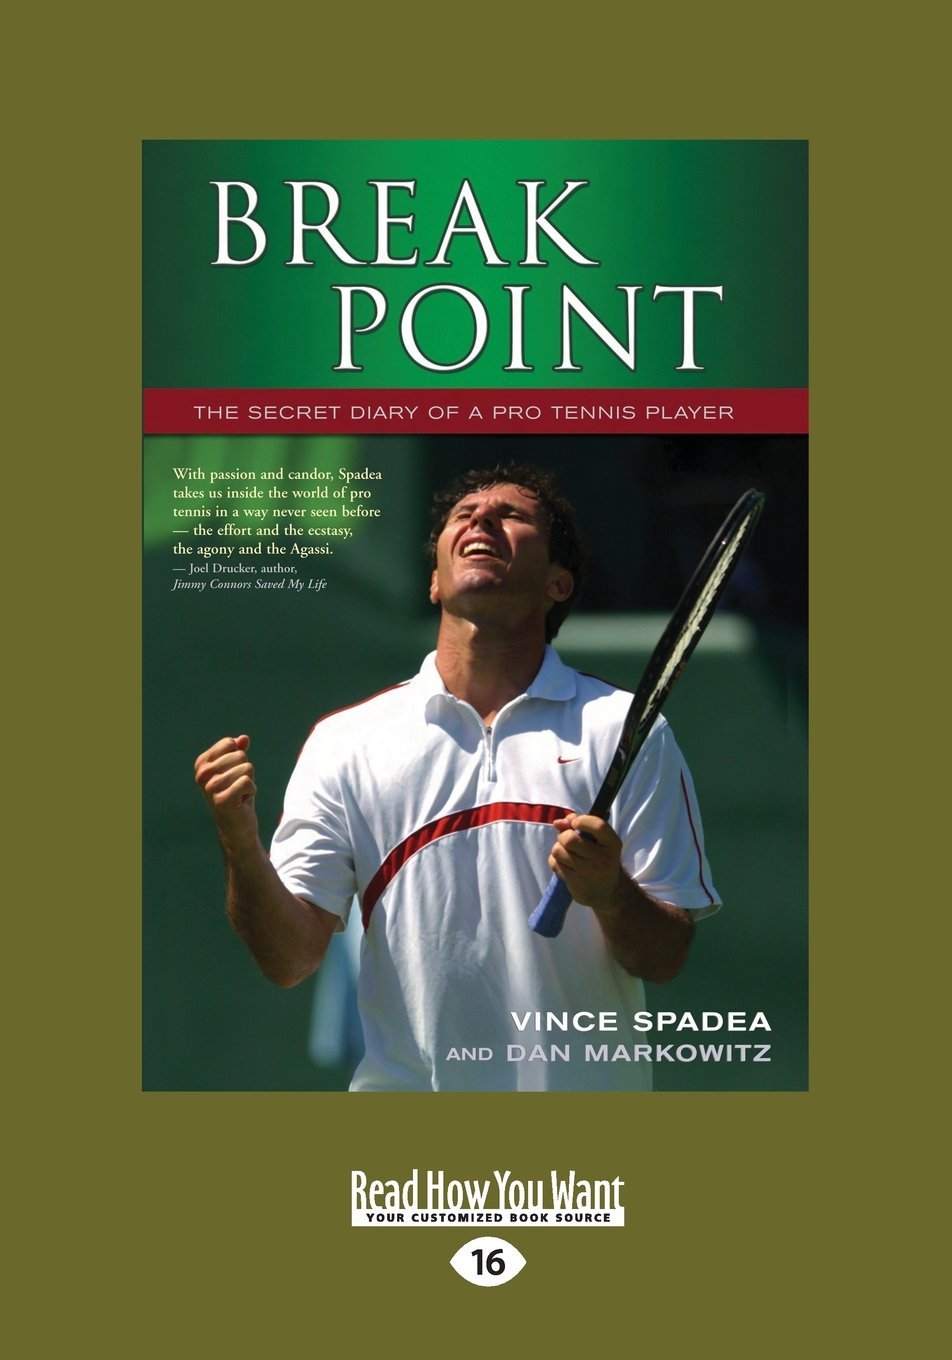 Break Point: The Secret Diary of a Pro Tennis Player by ReadHowYouWant